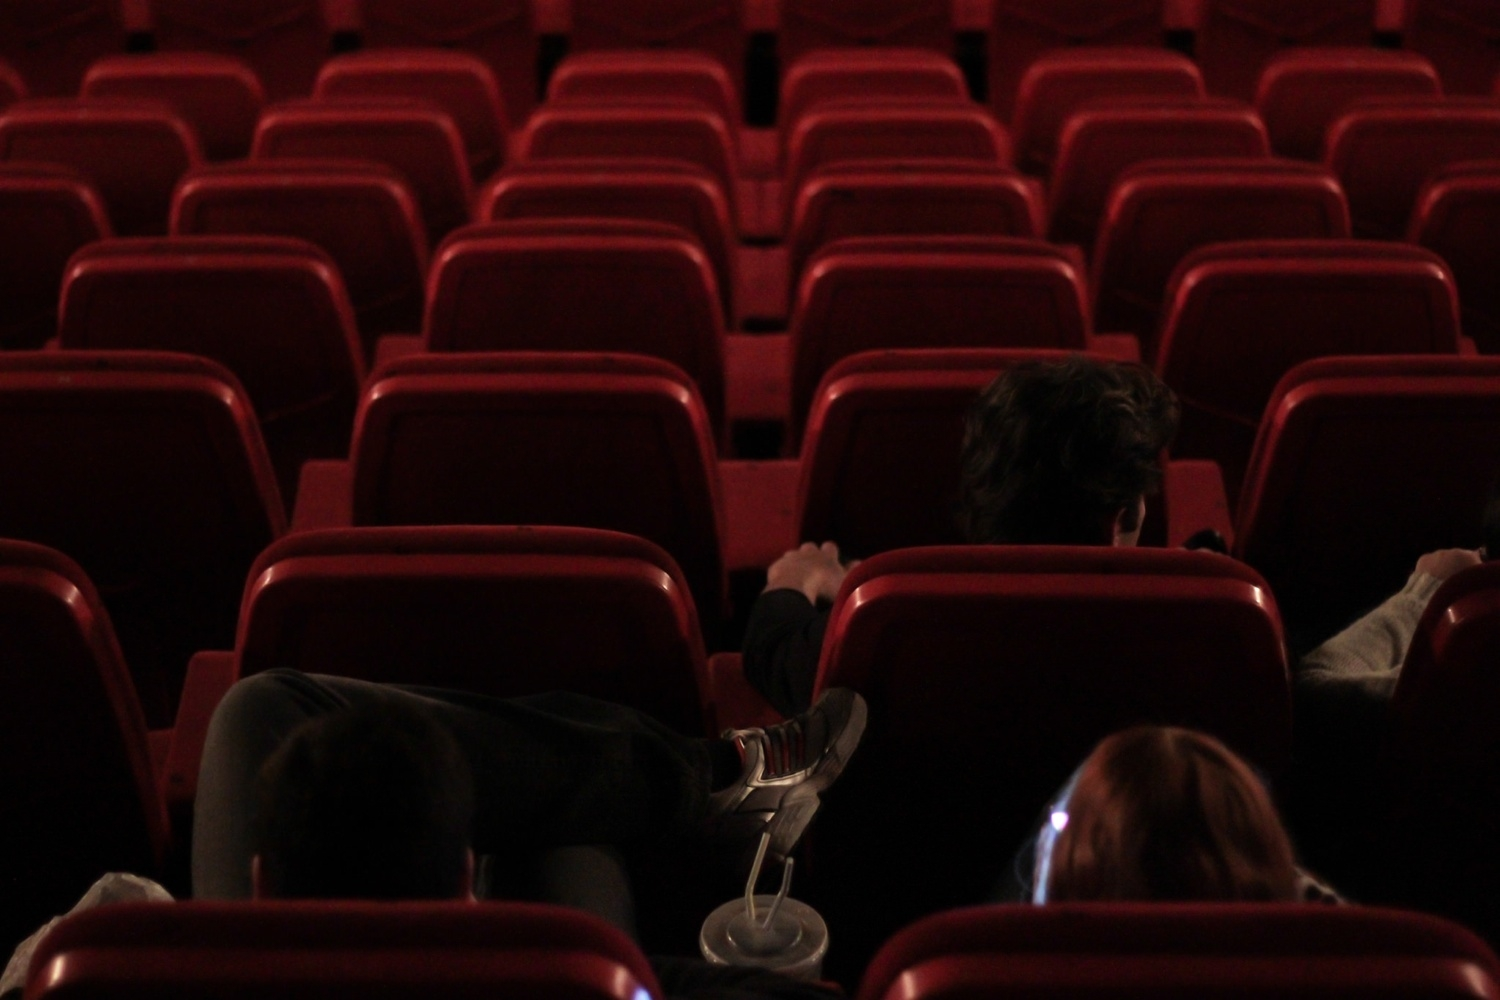 China Finds A Way to Make Cinemas Even Worse